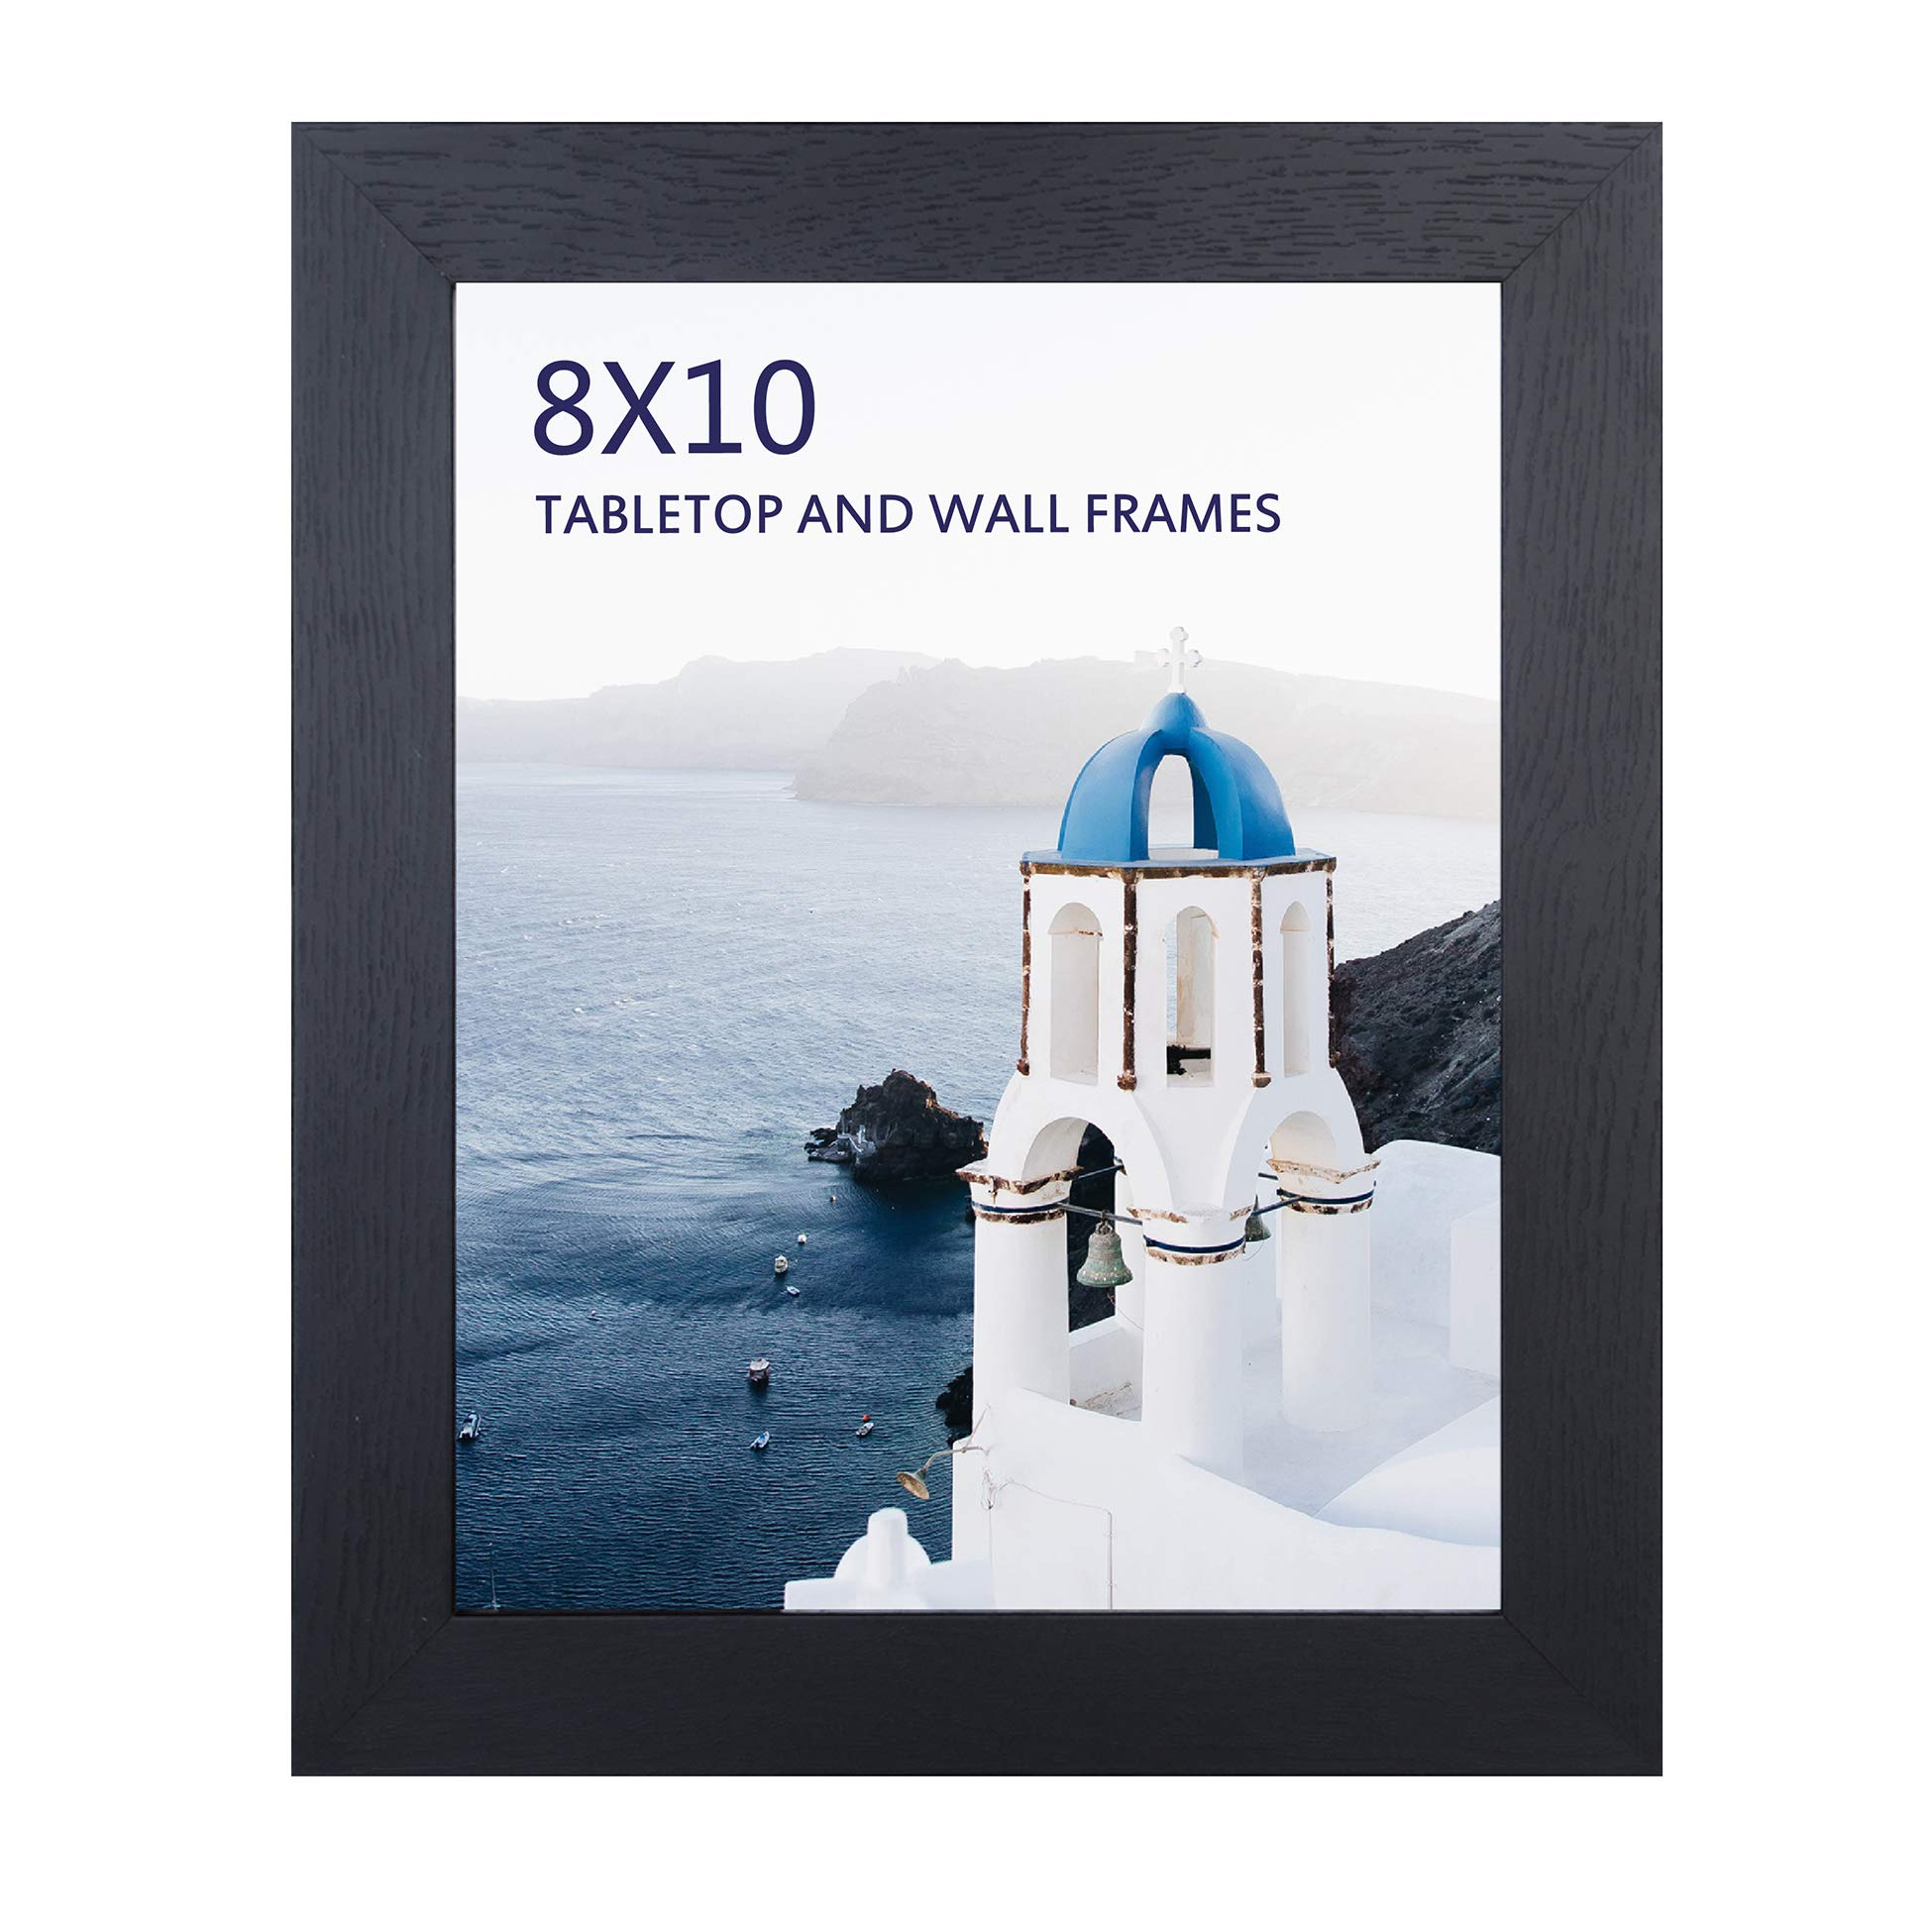 8x10 Black Picture Frame for Photo Display, Wood Frames for Wall Tabletop Decoration by FRAME YI